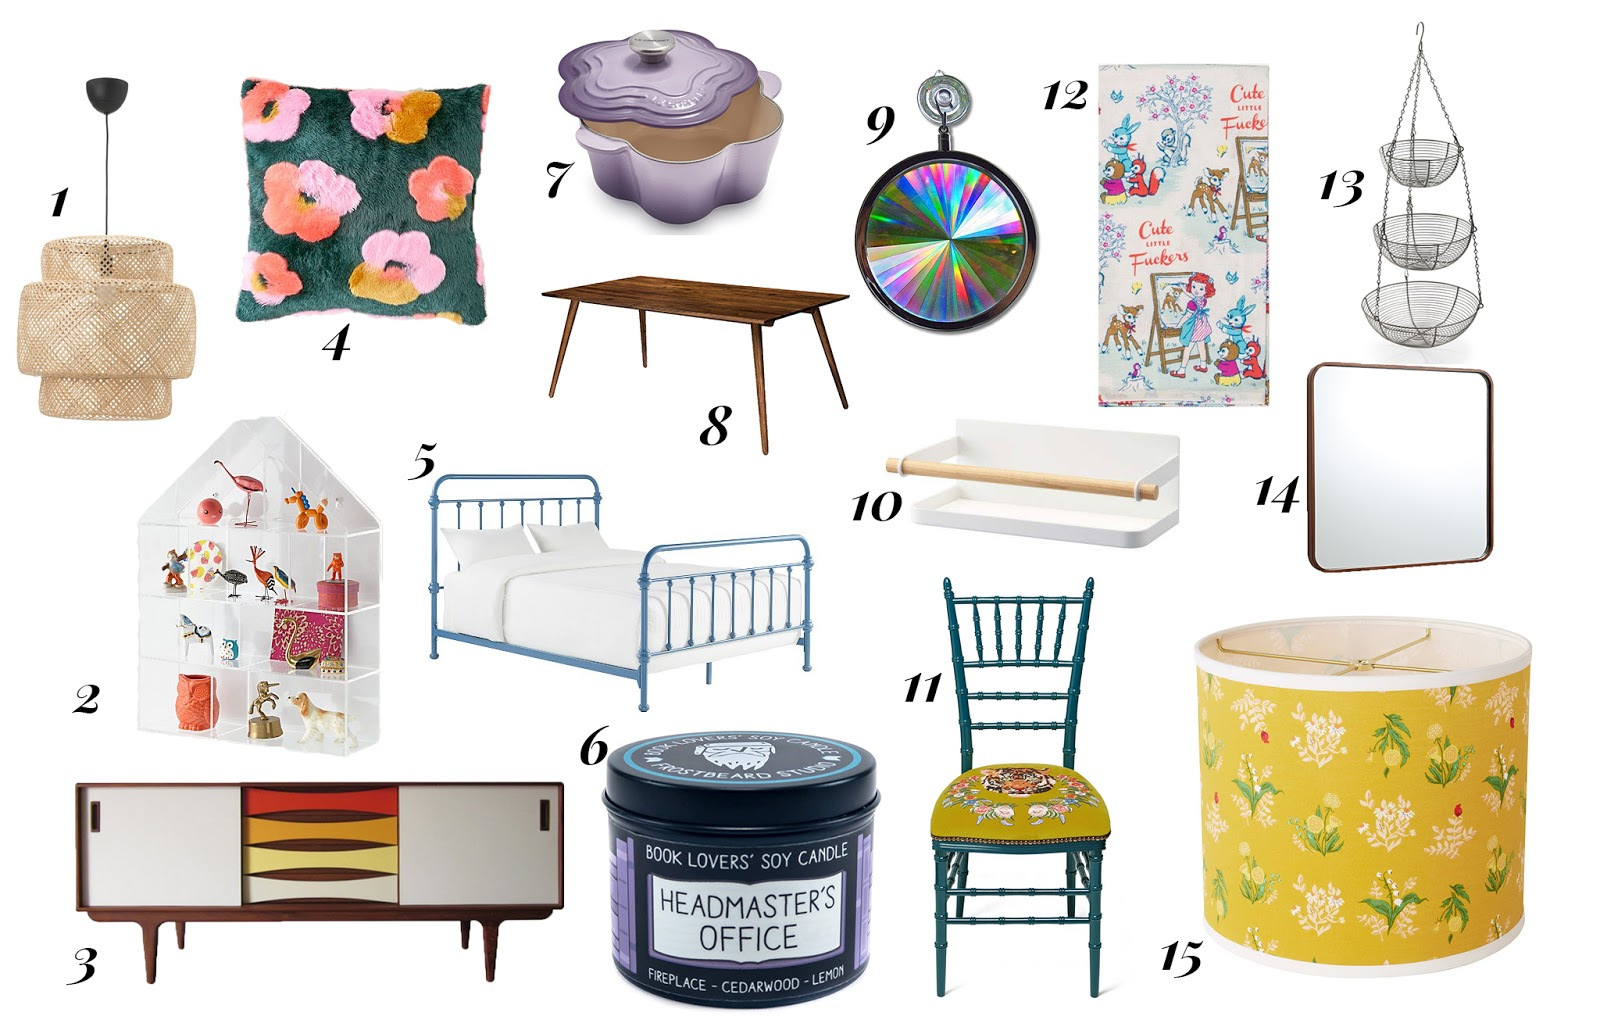 housewarming wishlist. mid-century modern style. the land of nod, target, urban outfitters, blue q, ikea, le creuset